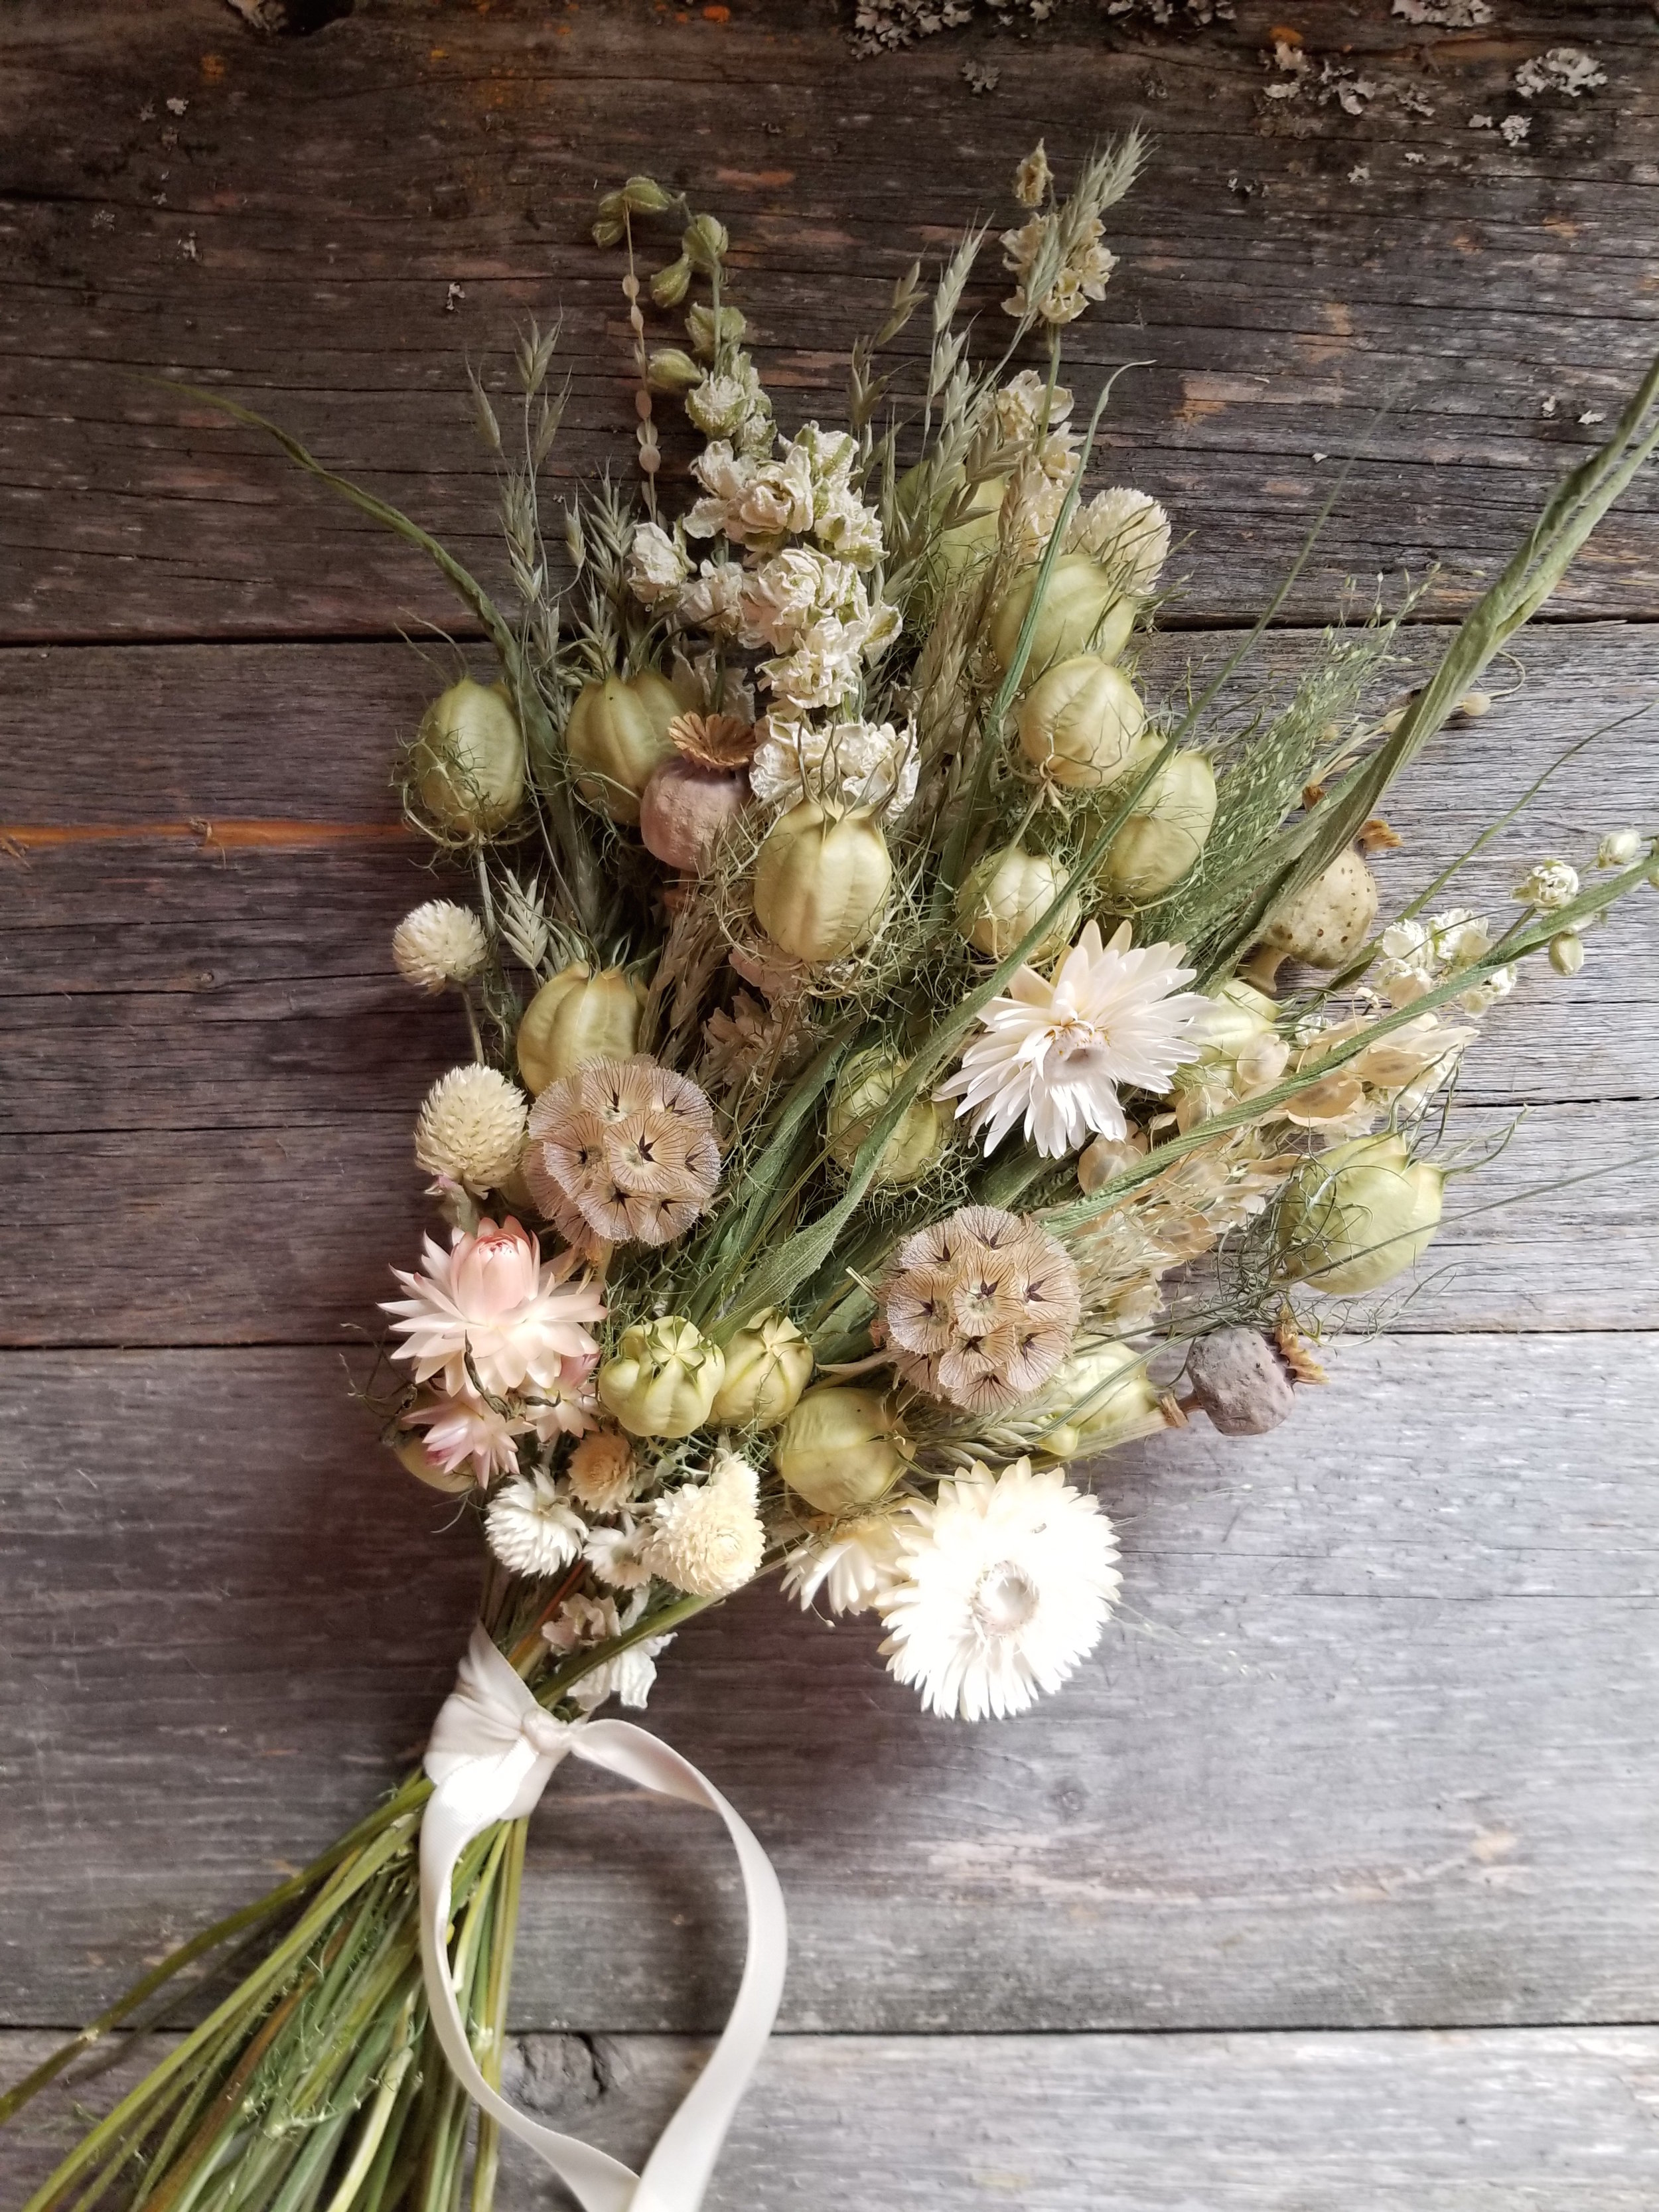 I made this posey for a pop-up market this winter. It has a background of green nigella pods and is accented with white larkspur, strawflowers and gomphrena. I added frosted explosion grass for an airy texture and some poppy and star flower pods for interest.